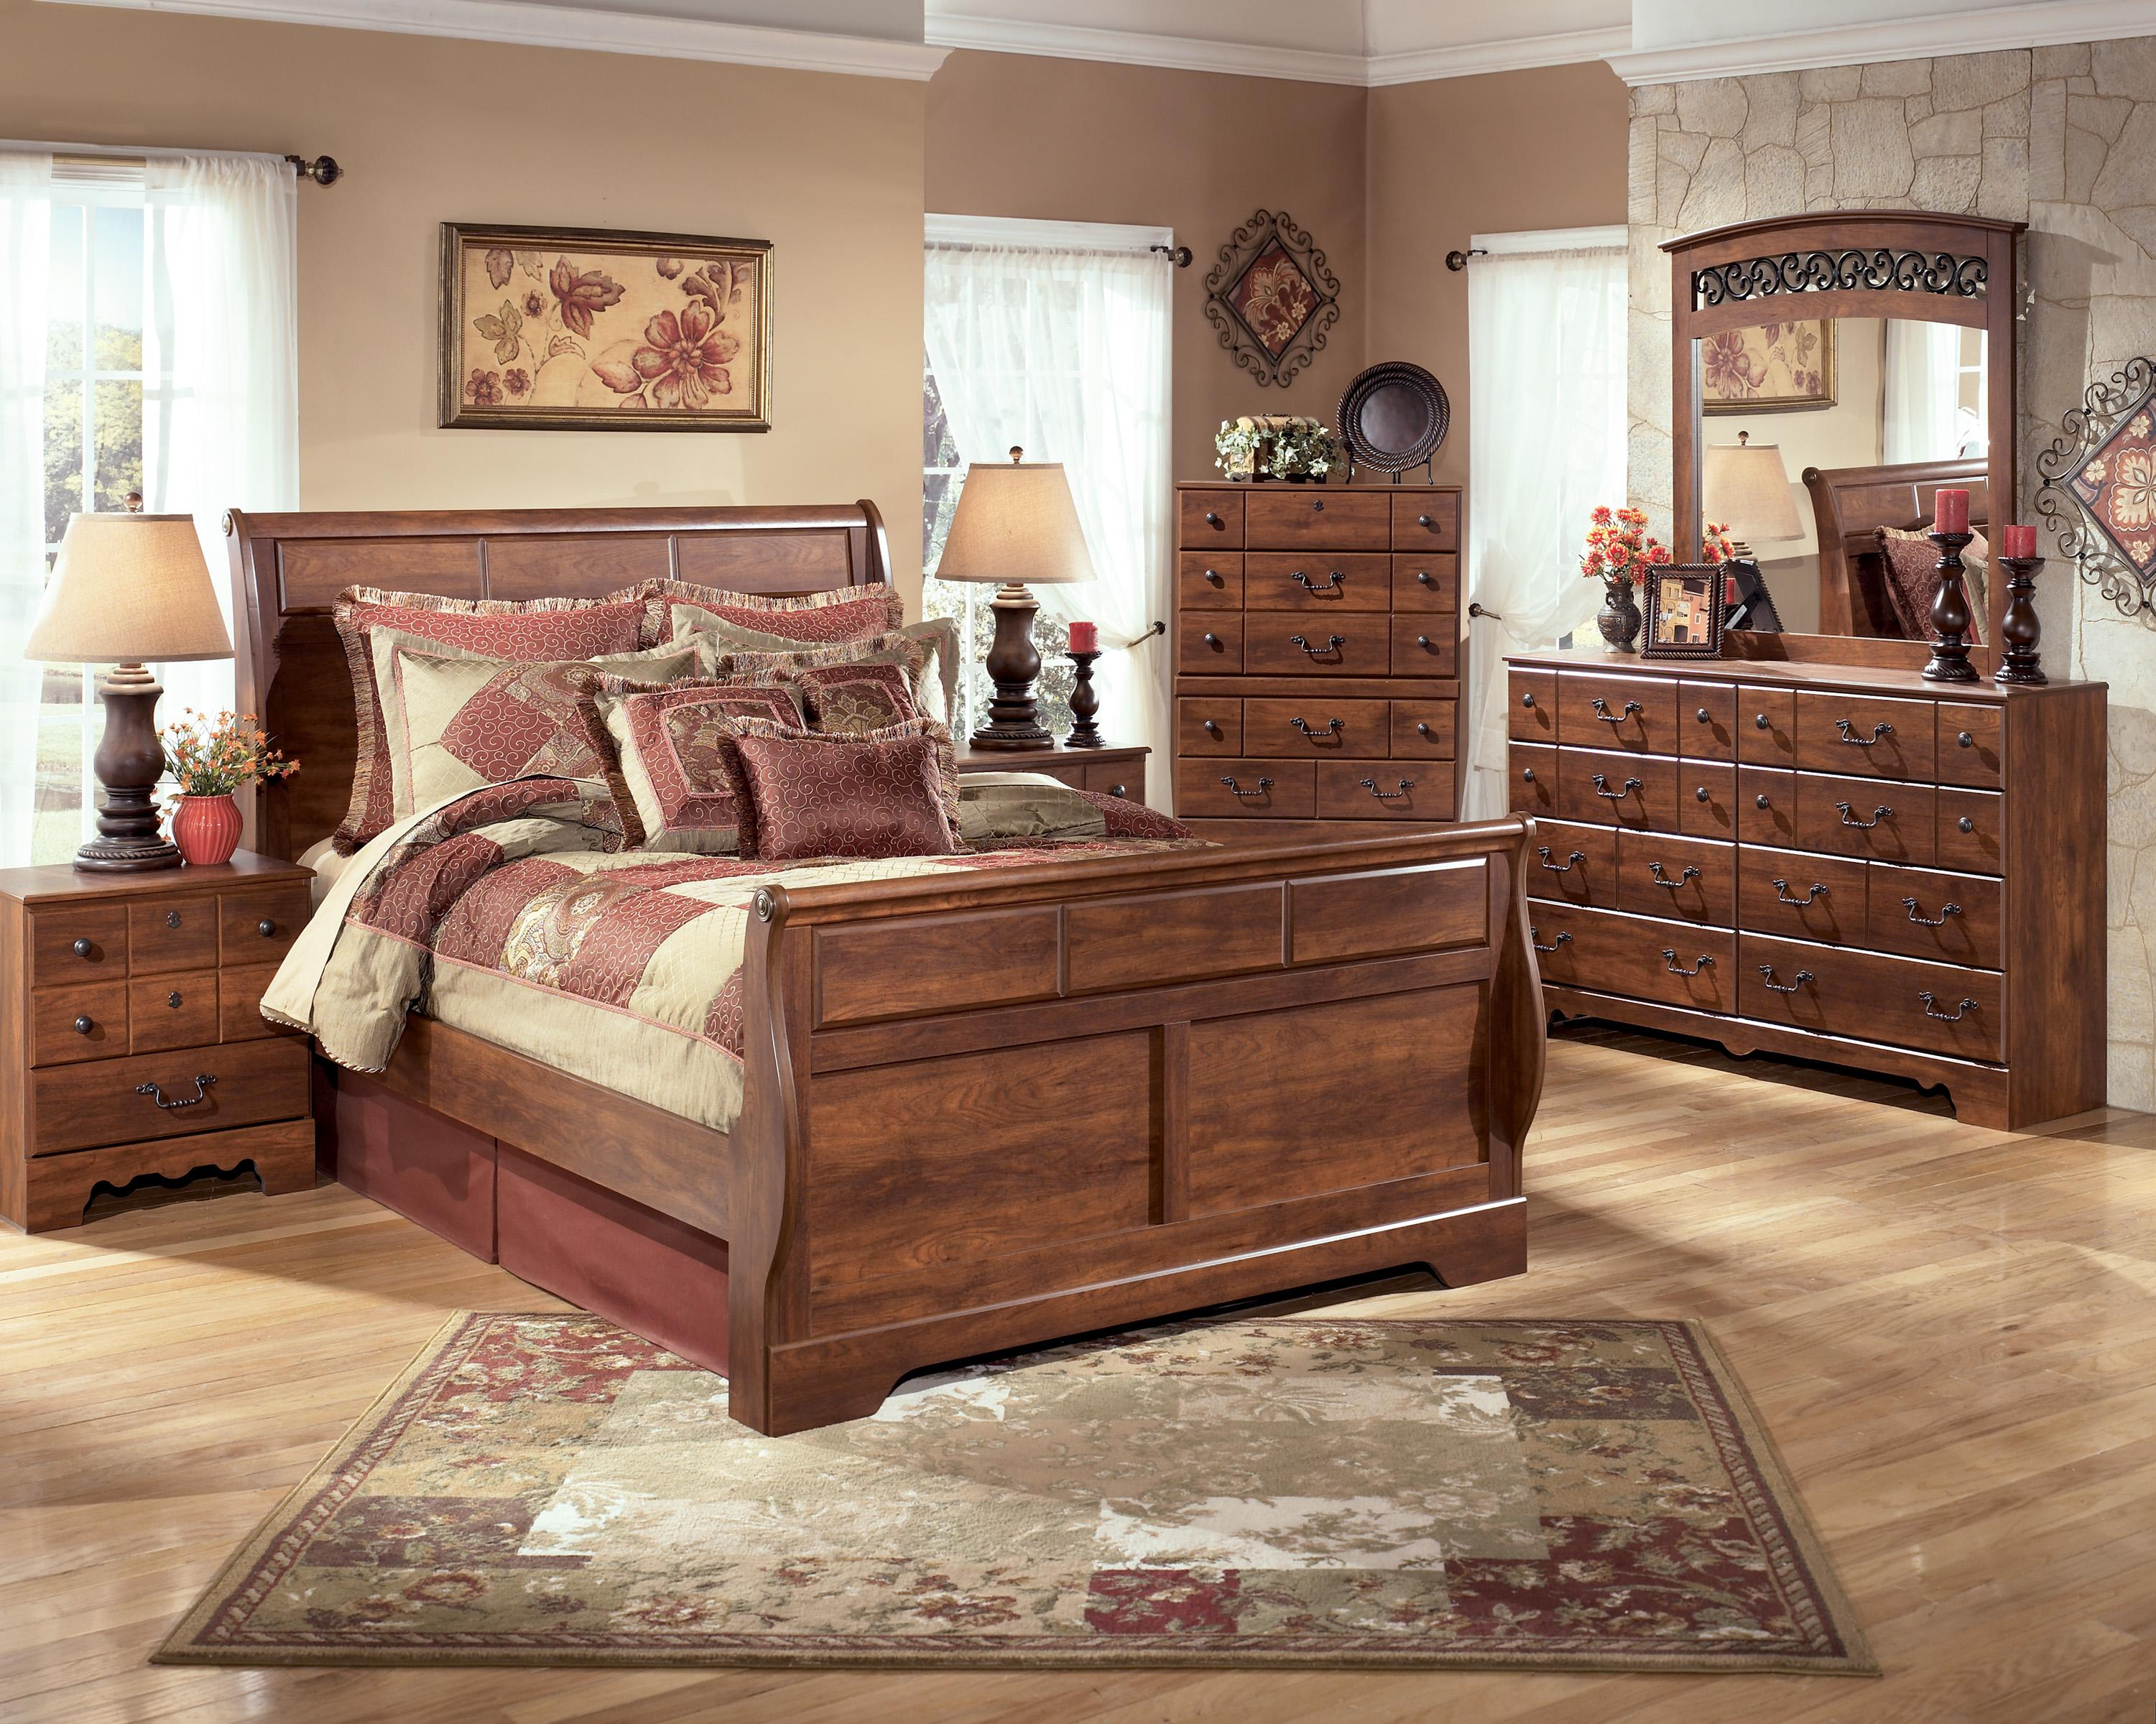 Signature Design By Ashley Timberline Queen Bedroom Group Del Sol Furniture Bedroom Groups